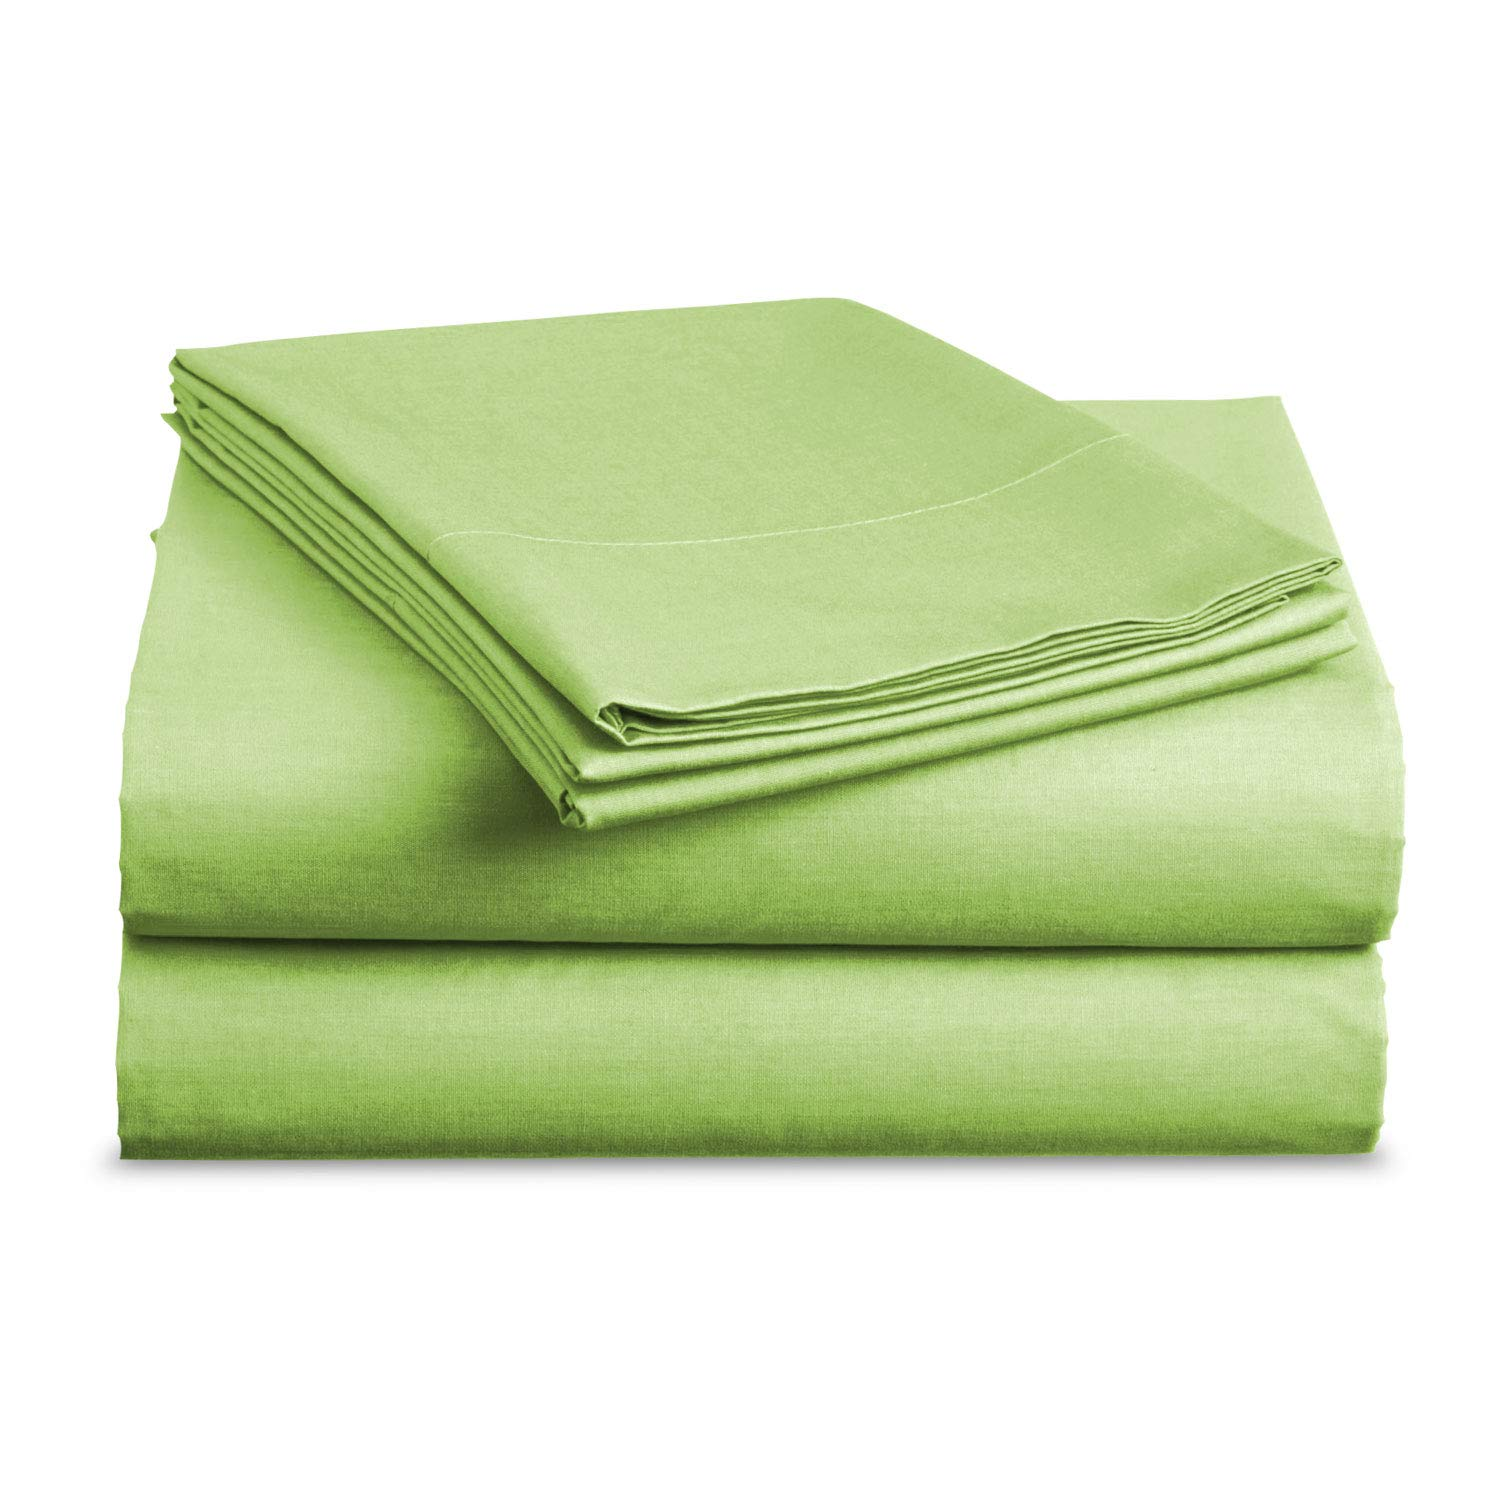 BASIC CHOICE Bed Sheet Set - Brushed Microfiber 2000 Bedding - Wrinkle, Fade, Stain Resistant - Hypoallergenic - 4 Piece (Cal King, Lime)